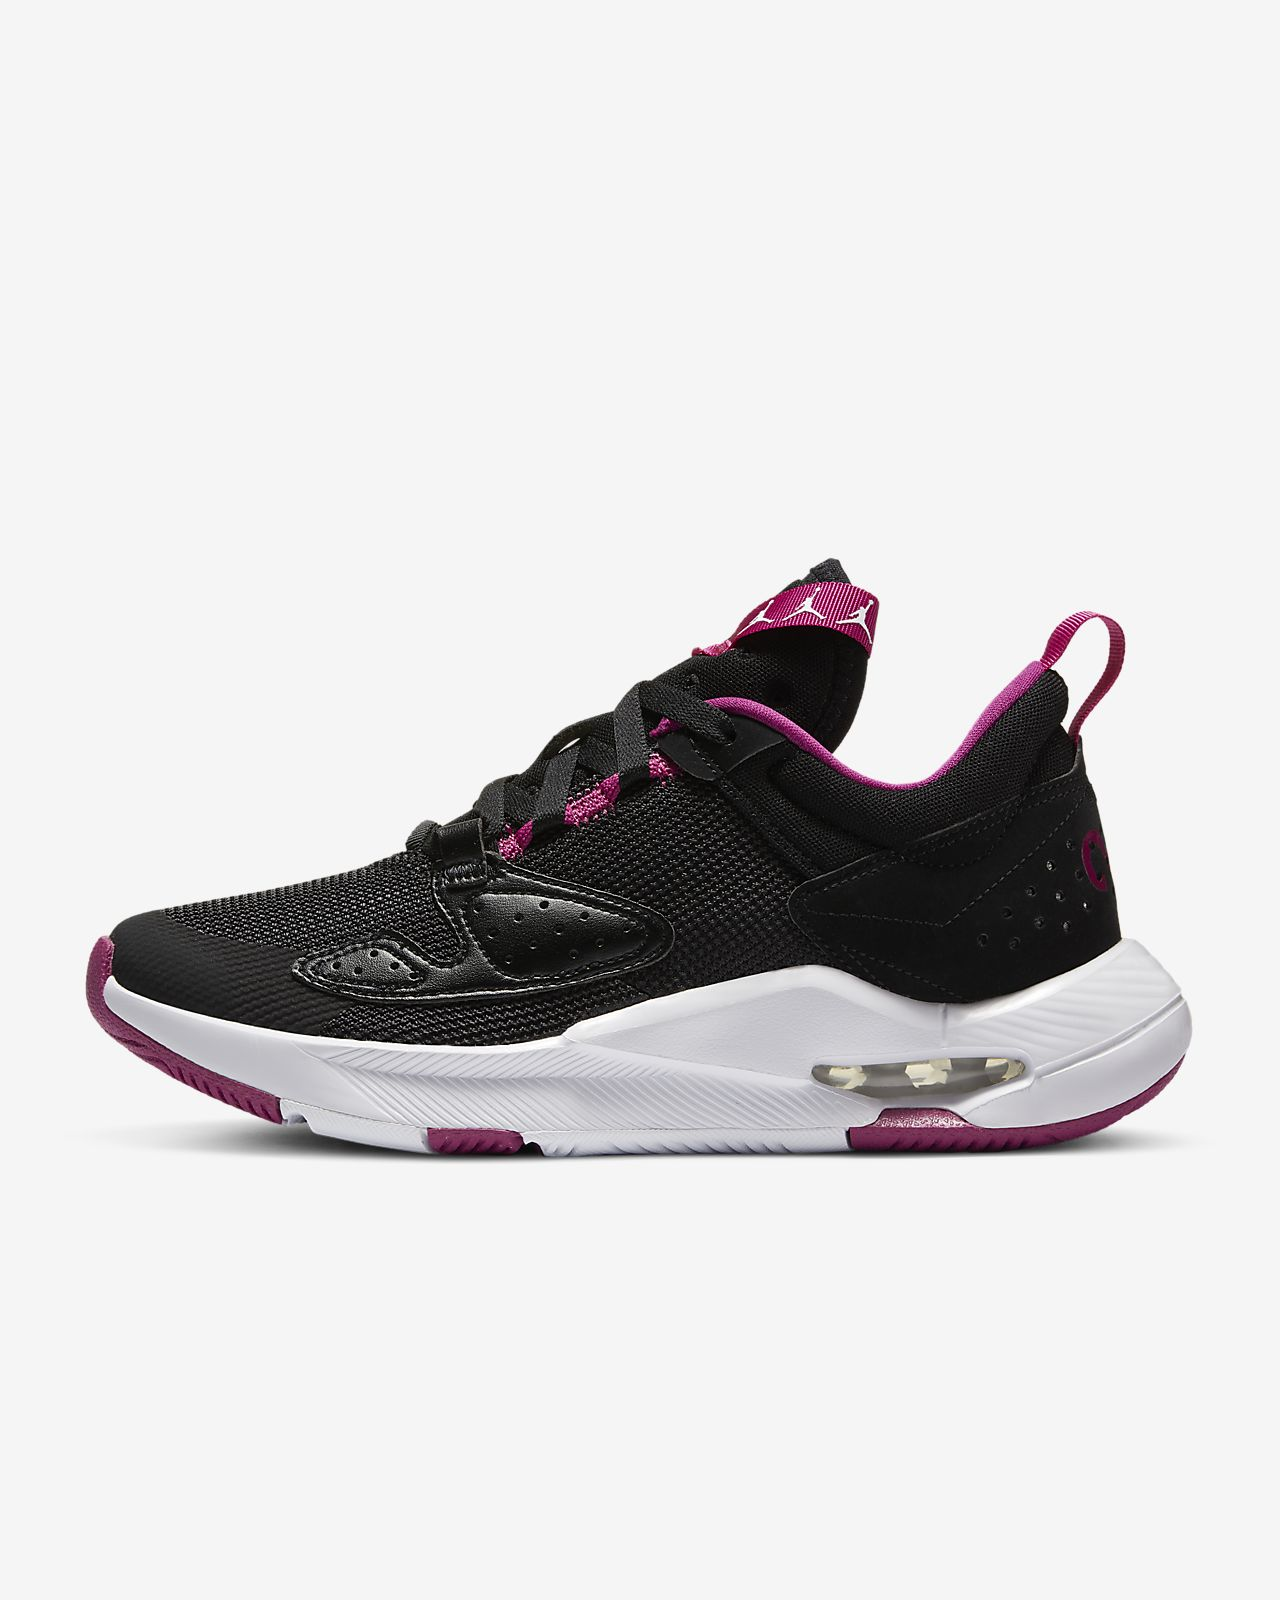 Jordan Air Cadence Women's Shoe